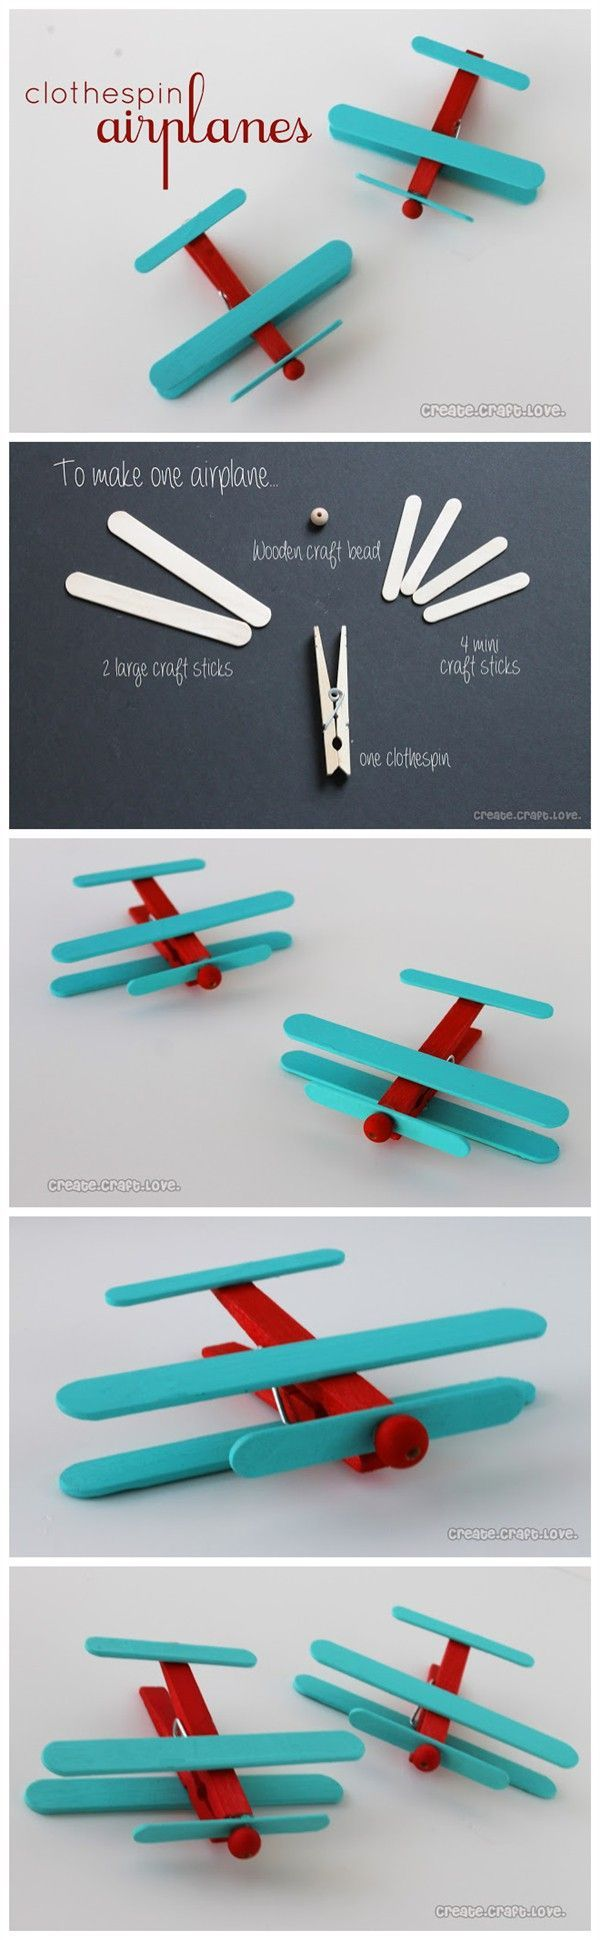 http://www.pbs.org/parents/crafts-for-kids/quick-easy-toy-planes/